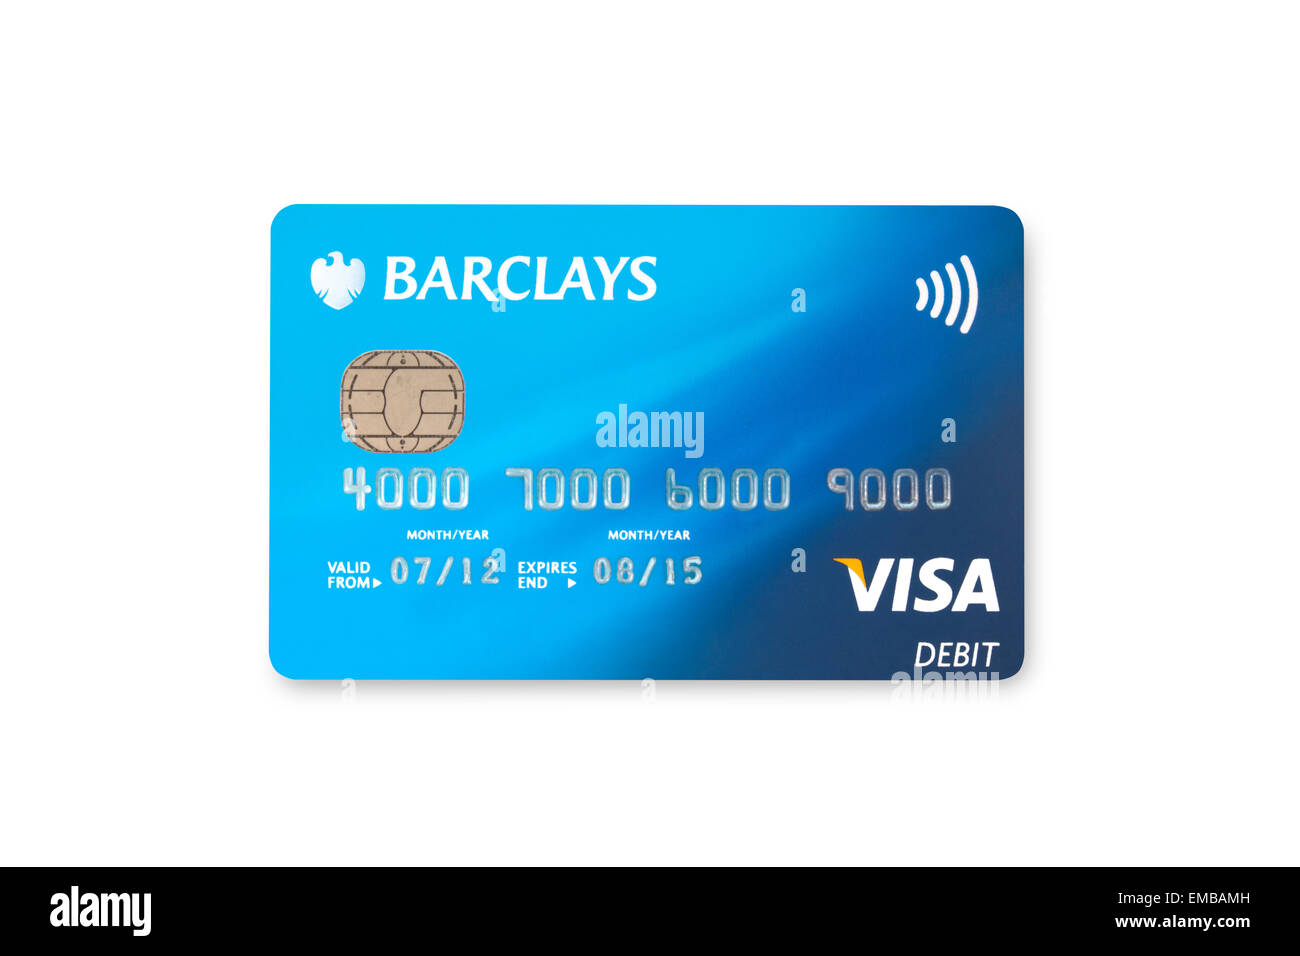 Barclays Visa bank card on white background Stock Photo: 81384481 ...